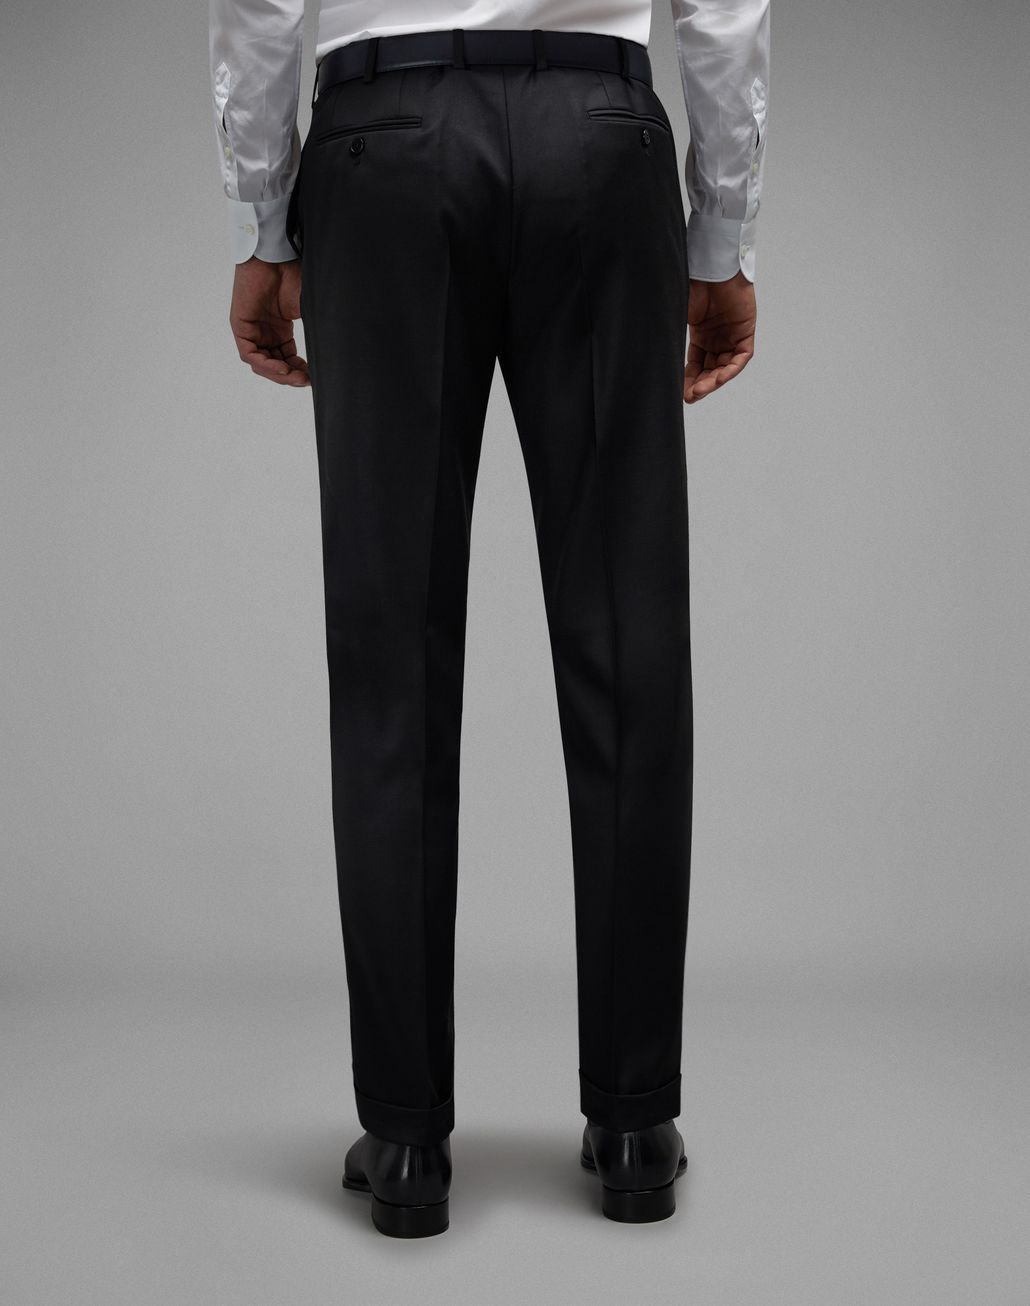 BRIONI 'Essential' Black Tigullio Pants Trousers Man d